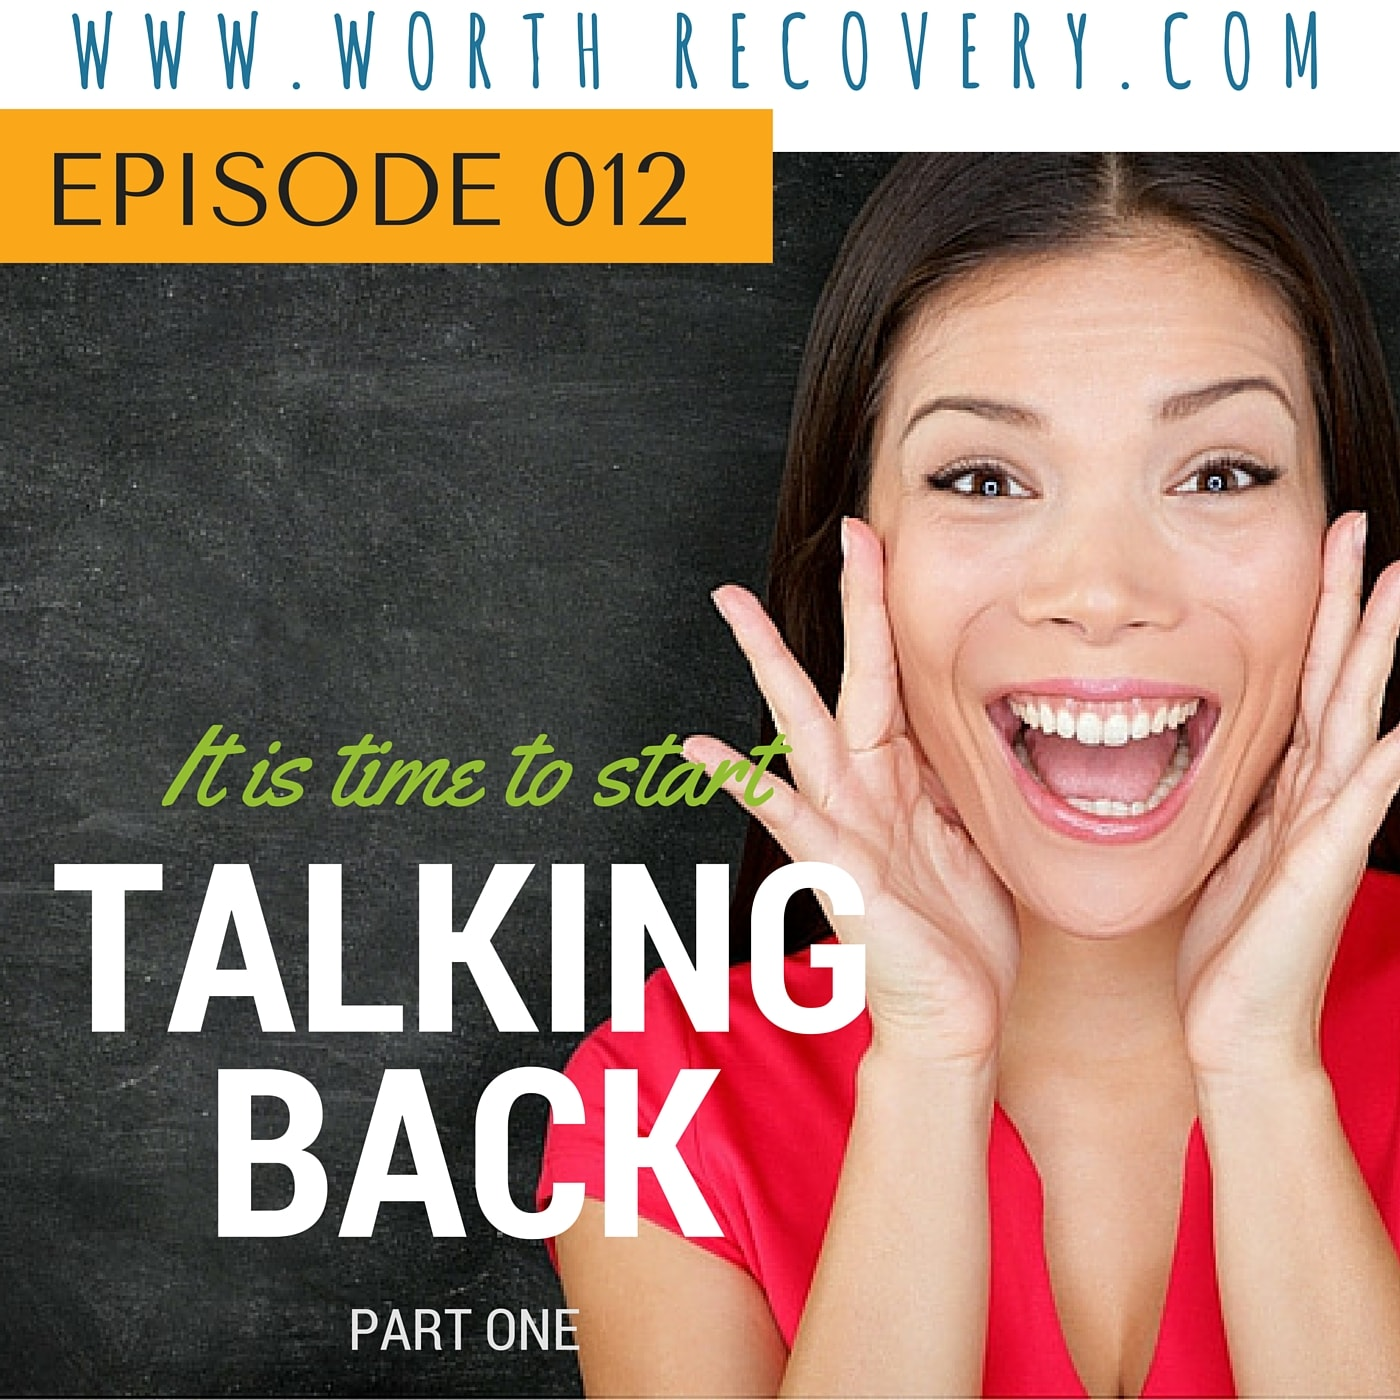 Episode 012: Talking Back Part 1